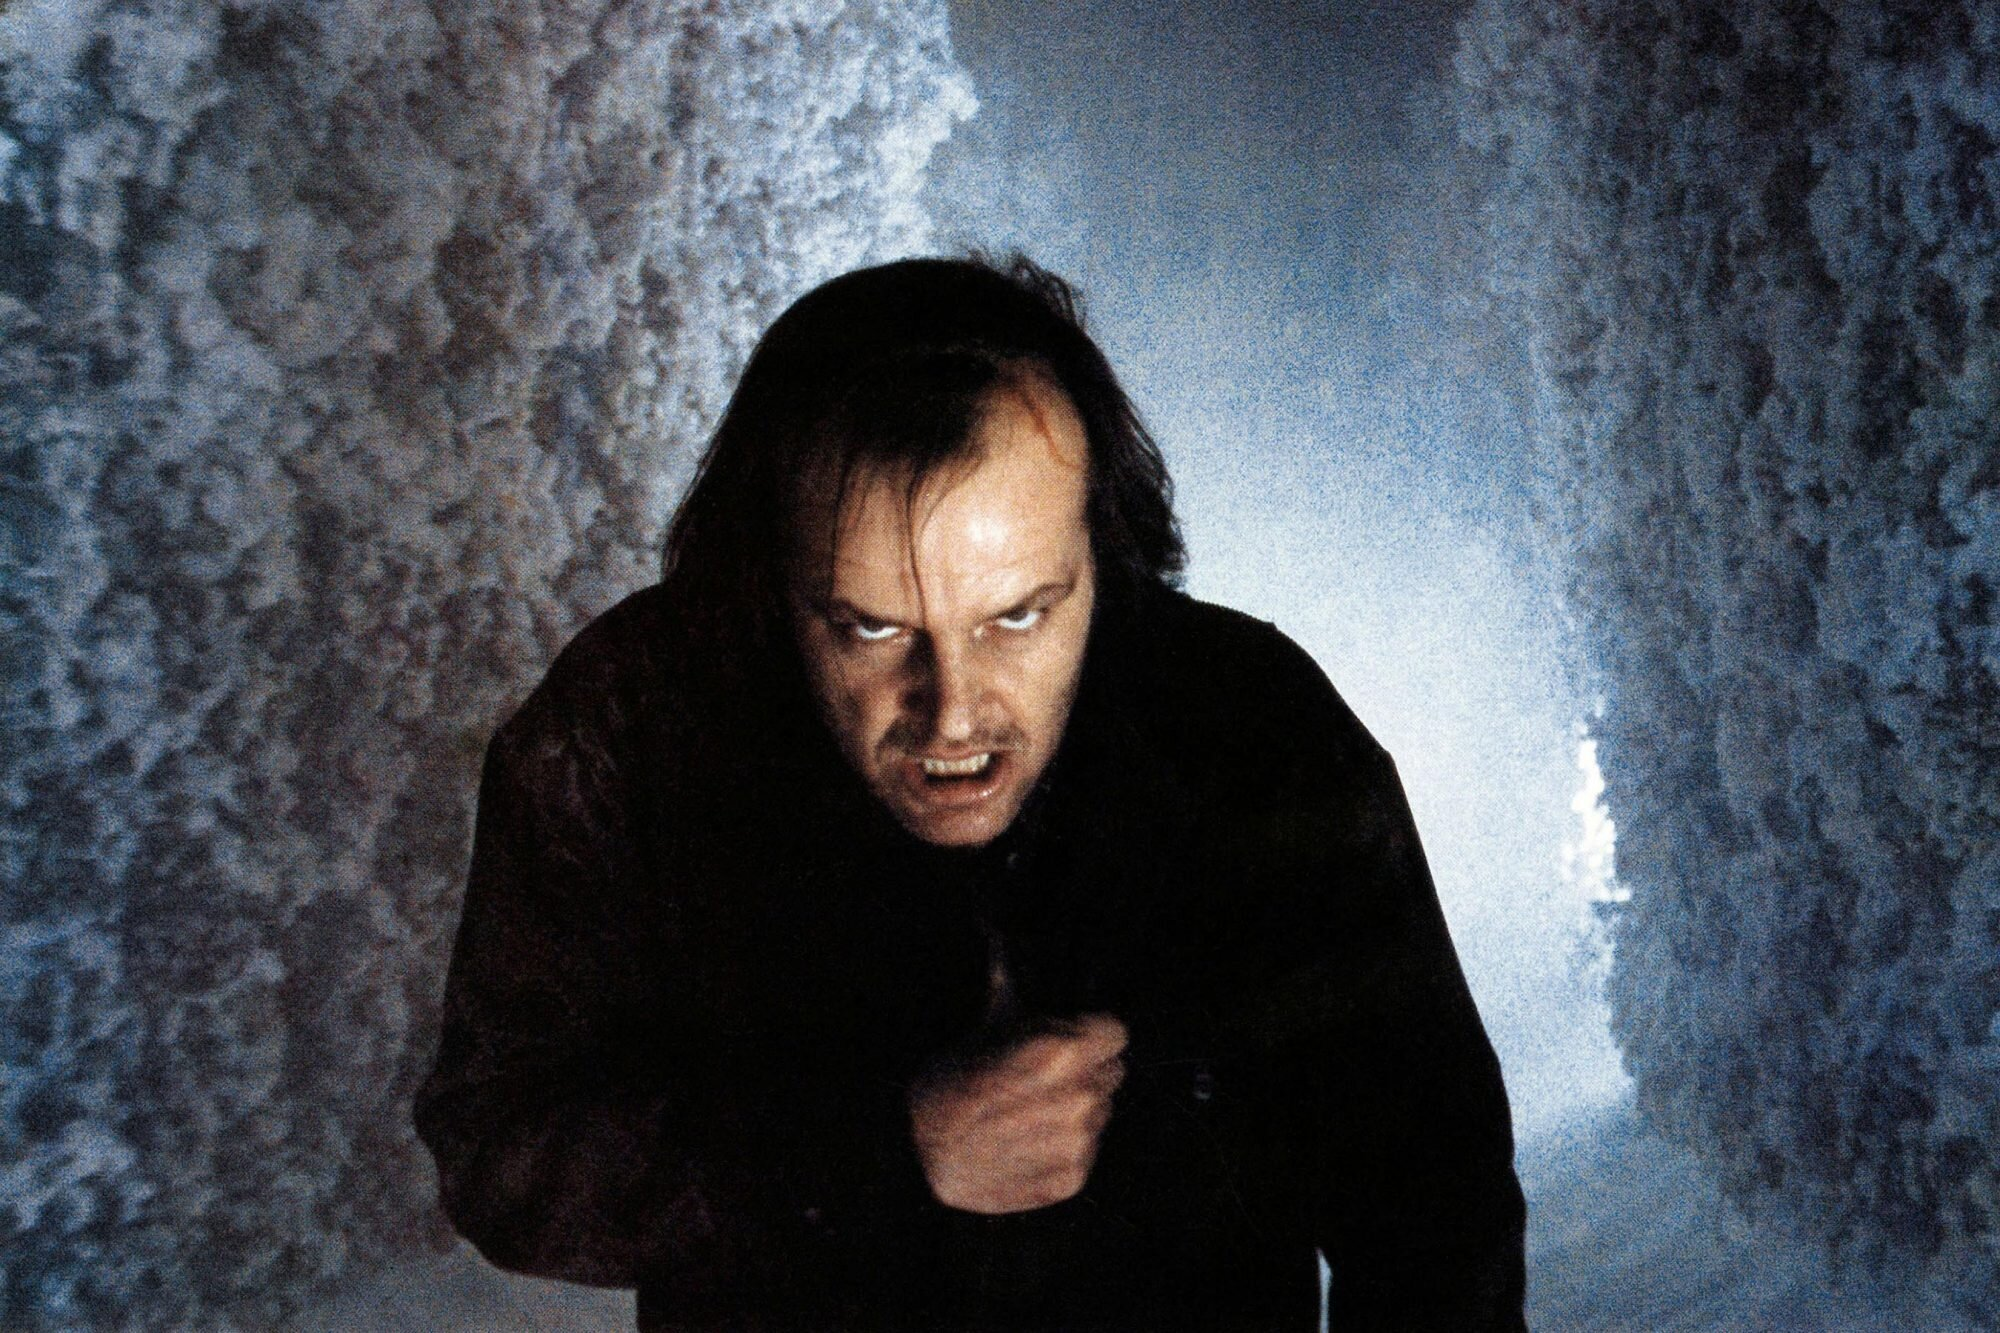 The Shining producer: Why the ending really changed | EW.com